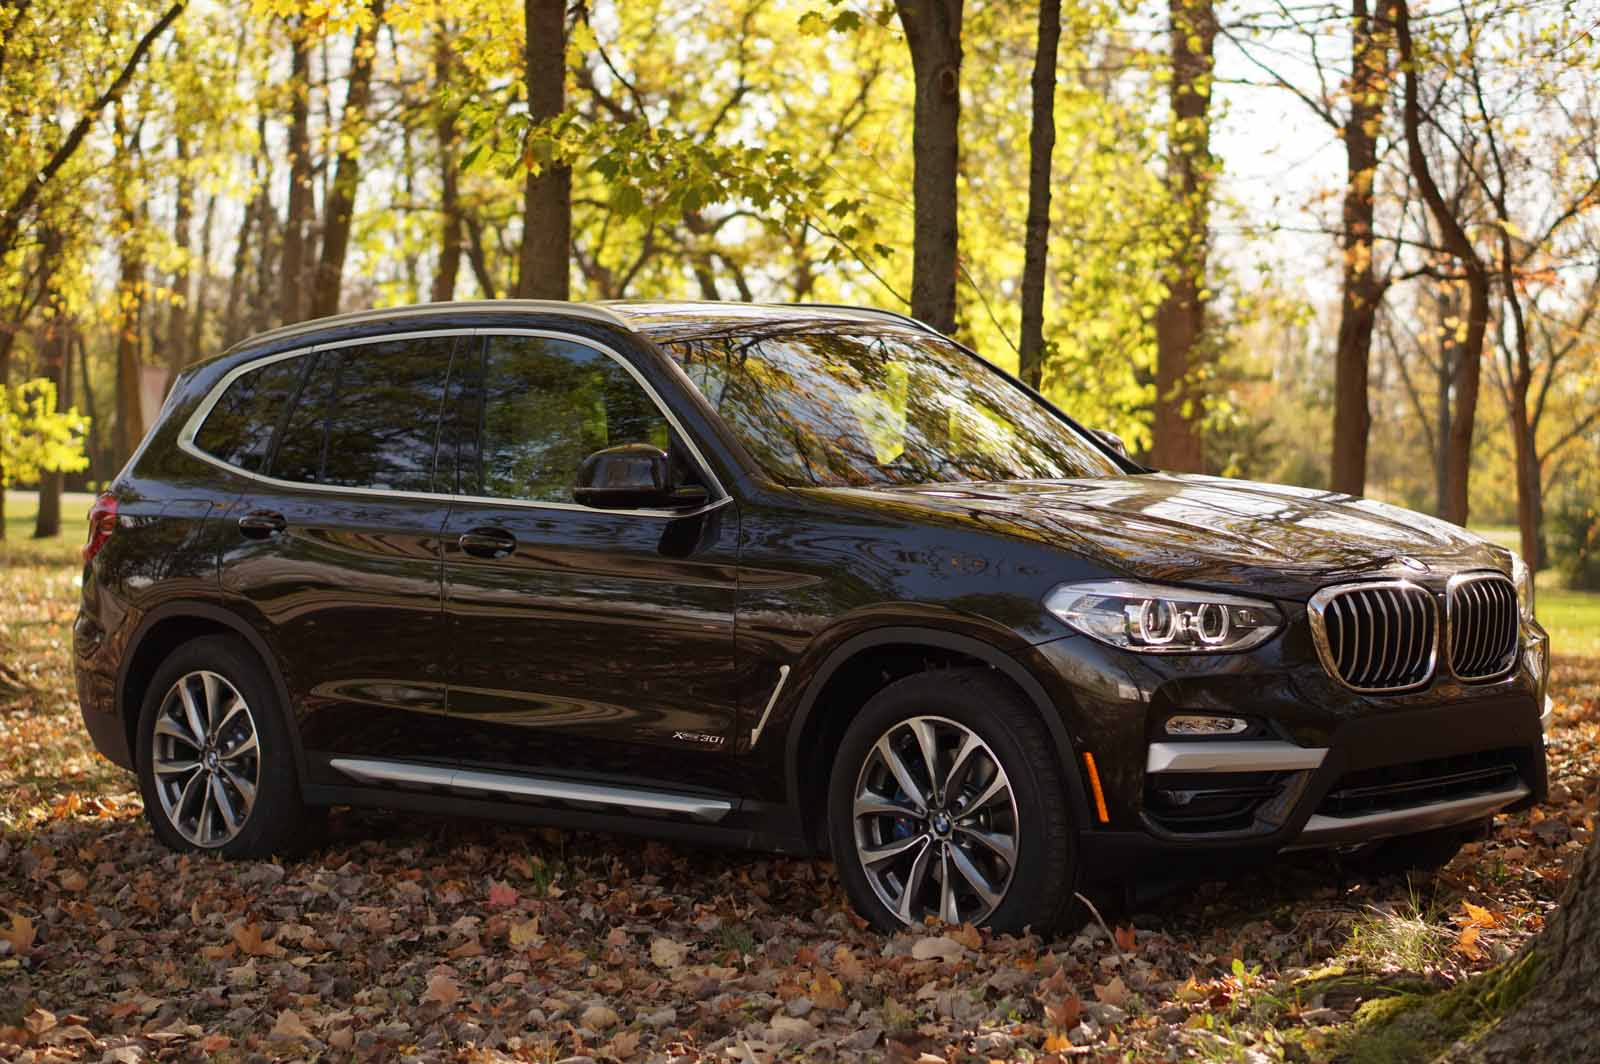 Bmw X3 2017 Interior >> 2018 BMW X3 Review - AutoGuide.com